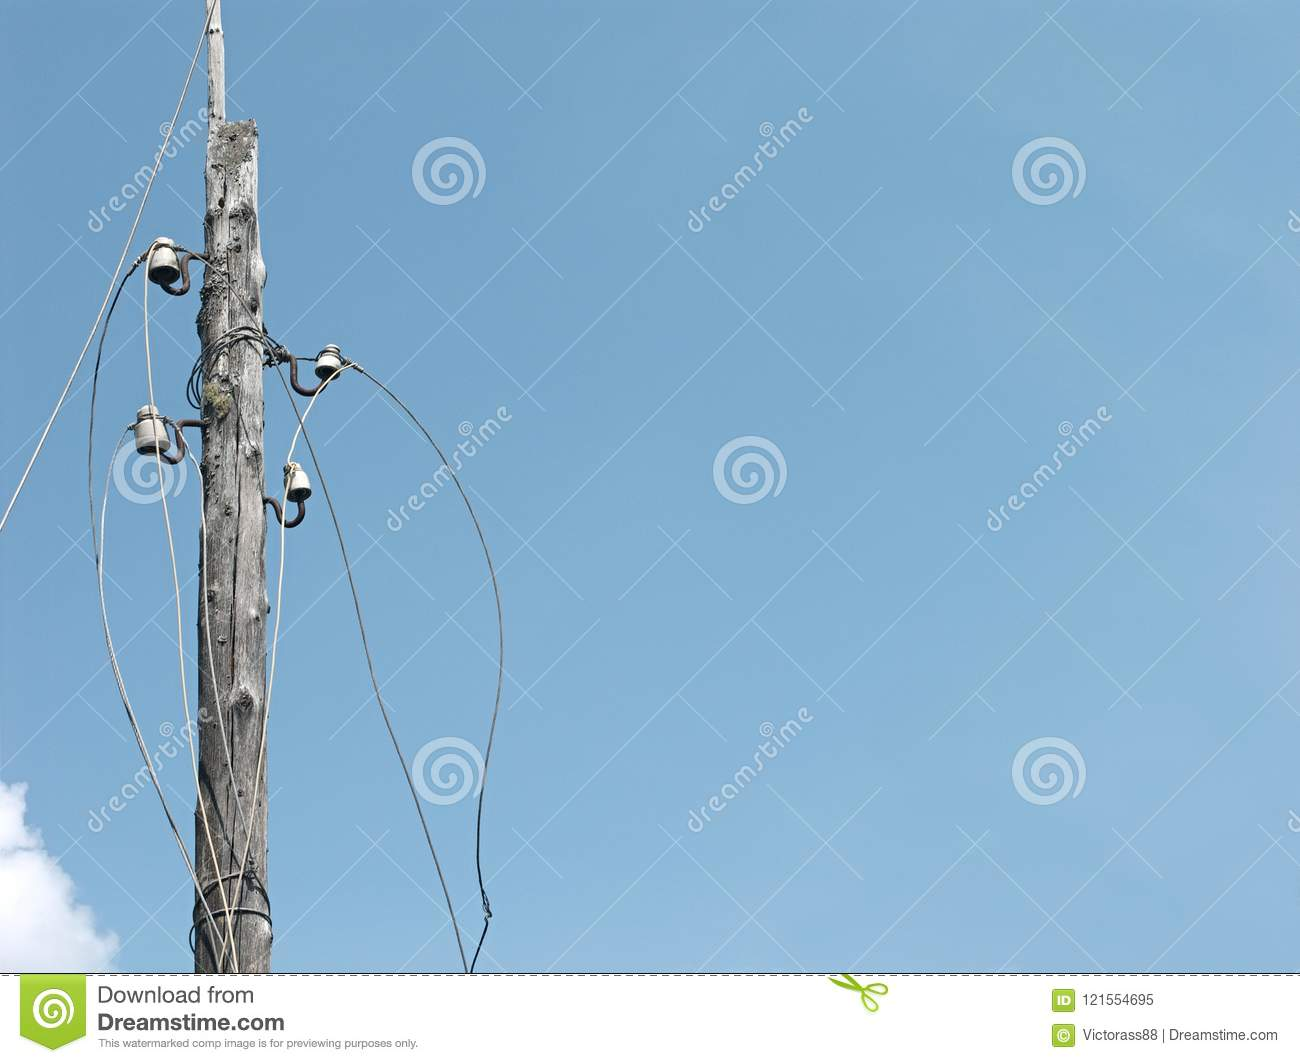 Electric Disconnected Wires Stock Image - Image of supply, power ...